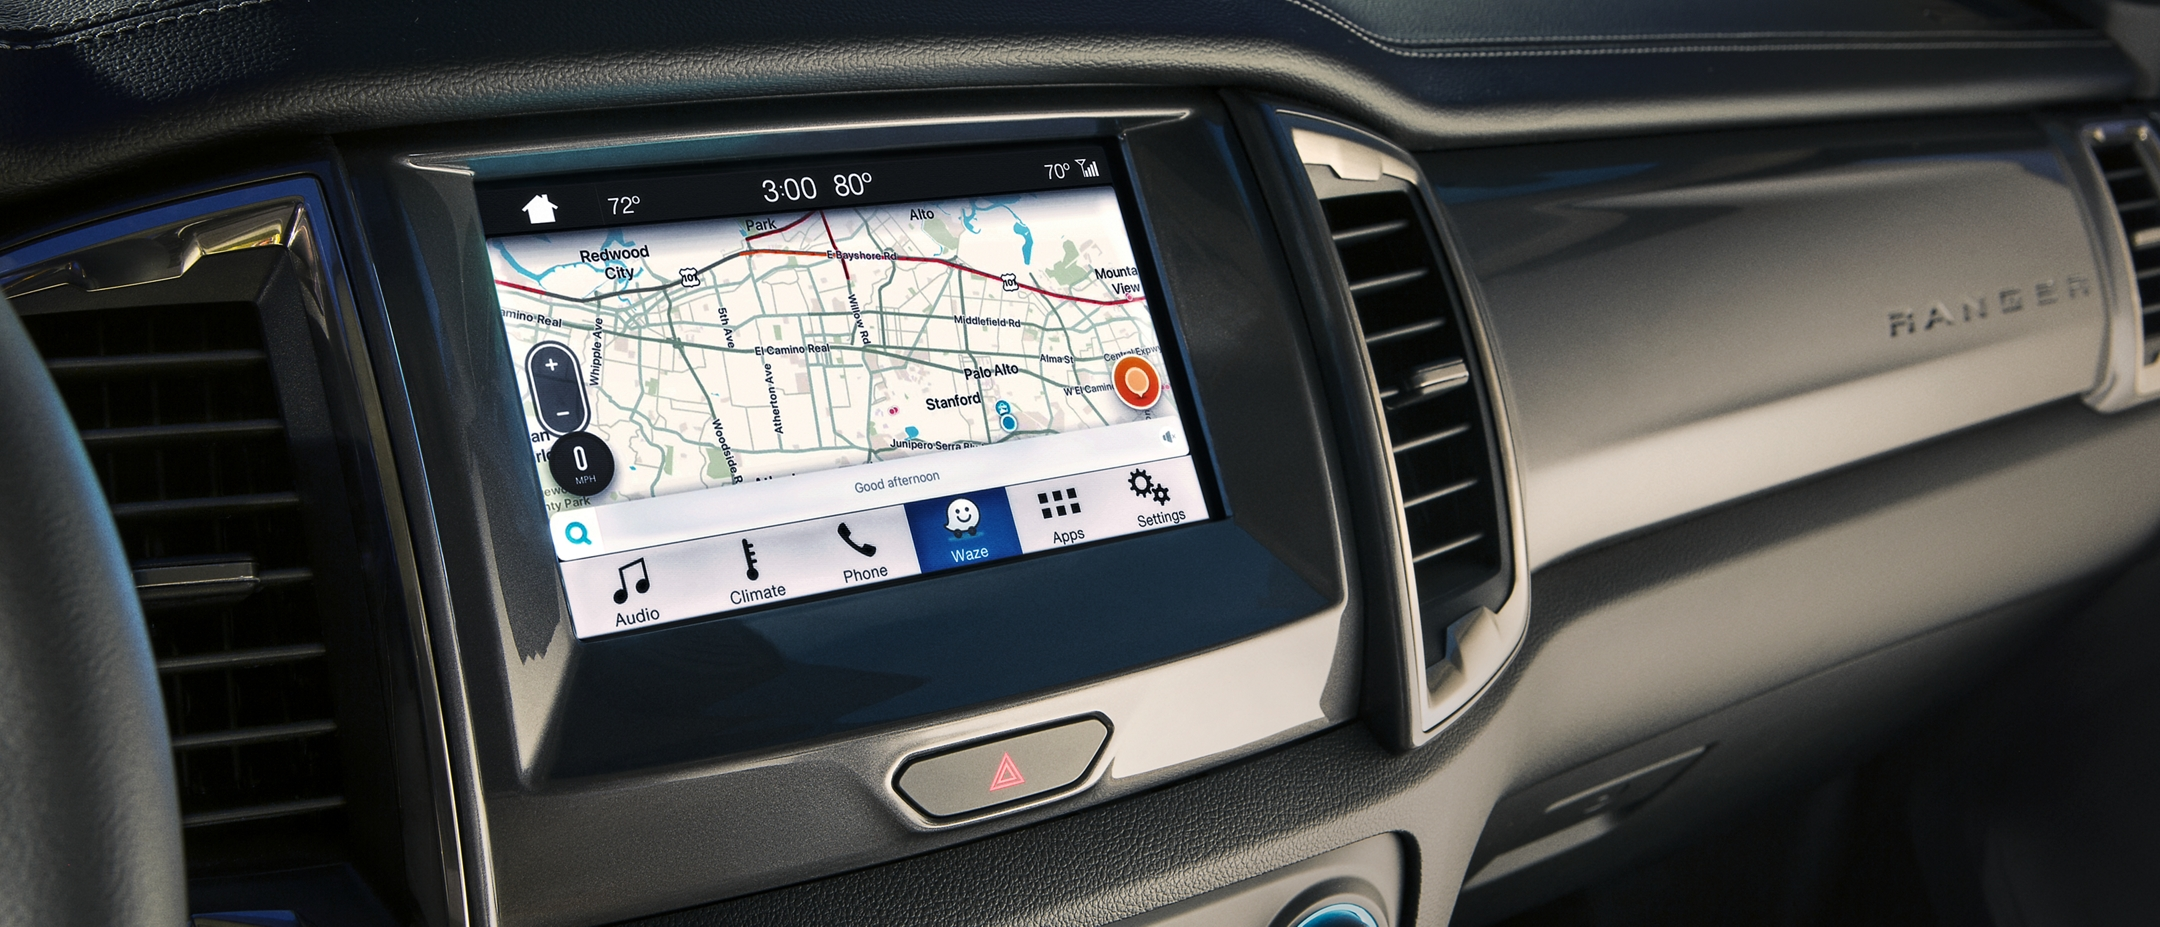 An image of the center console with the WAZE app up and fully functional on the SYNC 3 screen